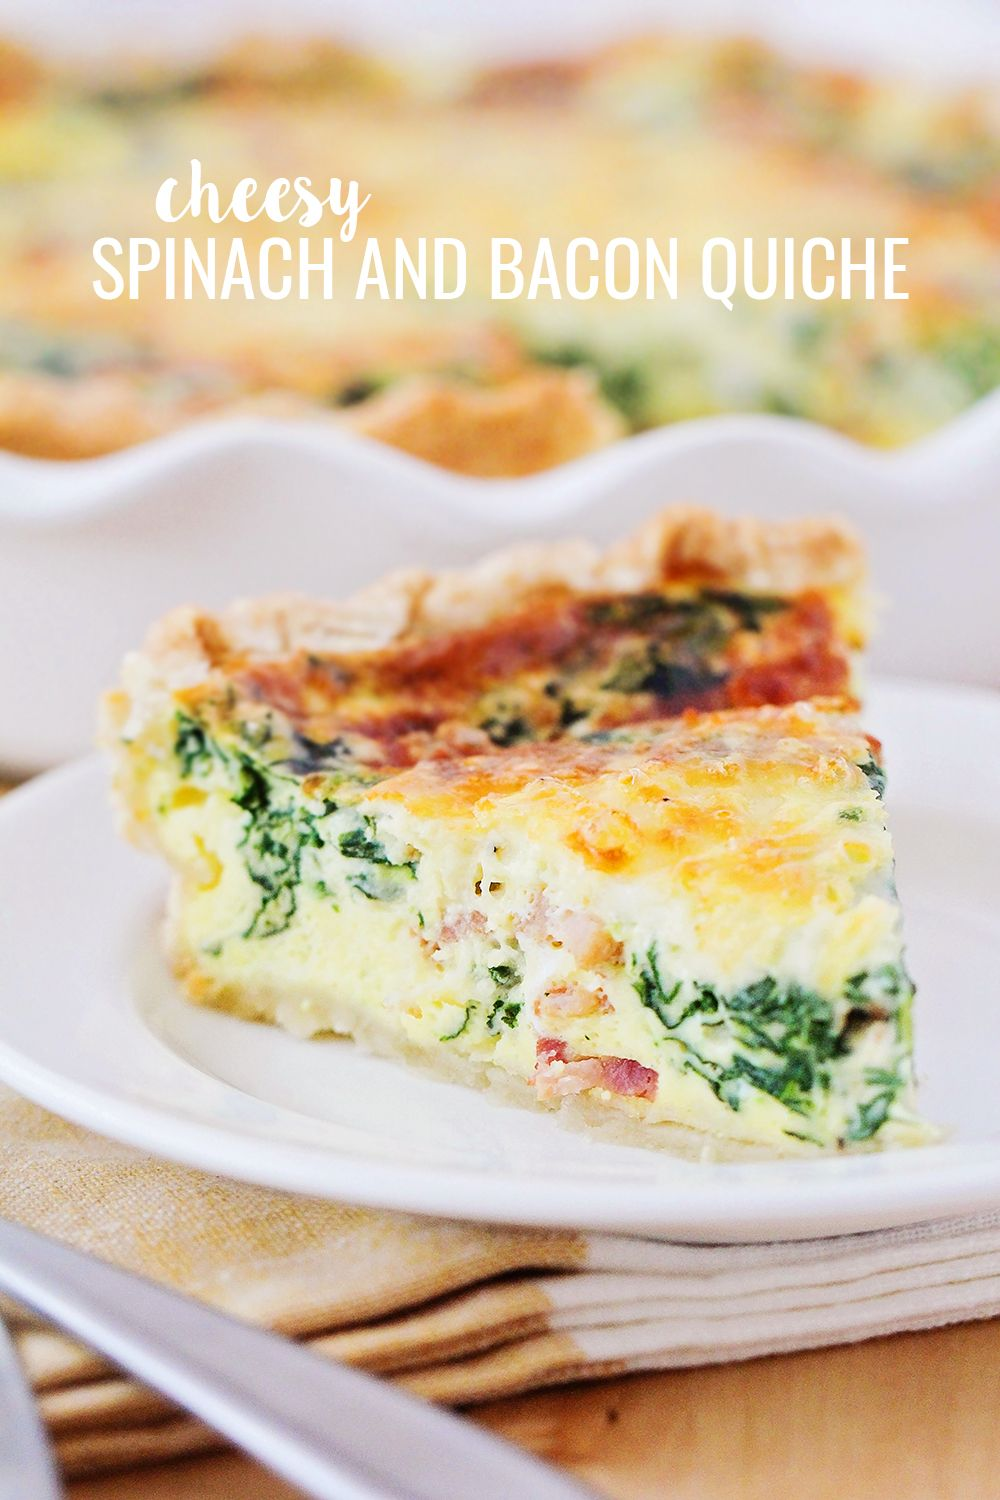 Spinach And Bacon Quiche In 2020 Bacon Quiche Bacon Quiche Recipe Spinach Quiche Recipes